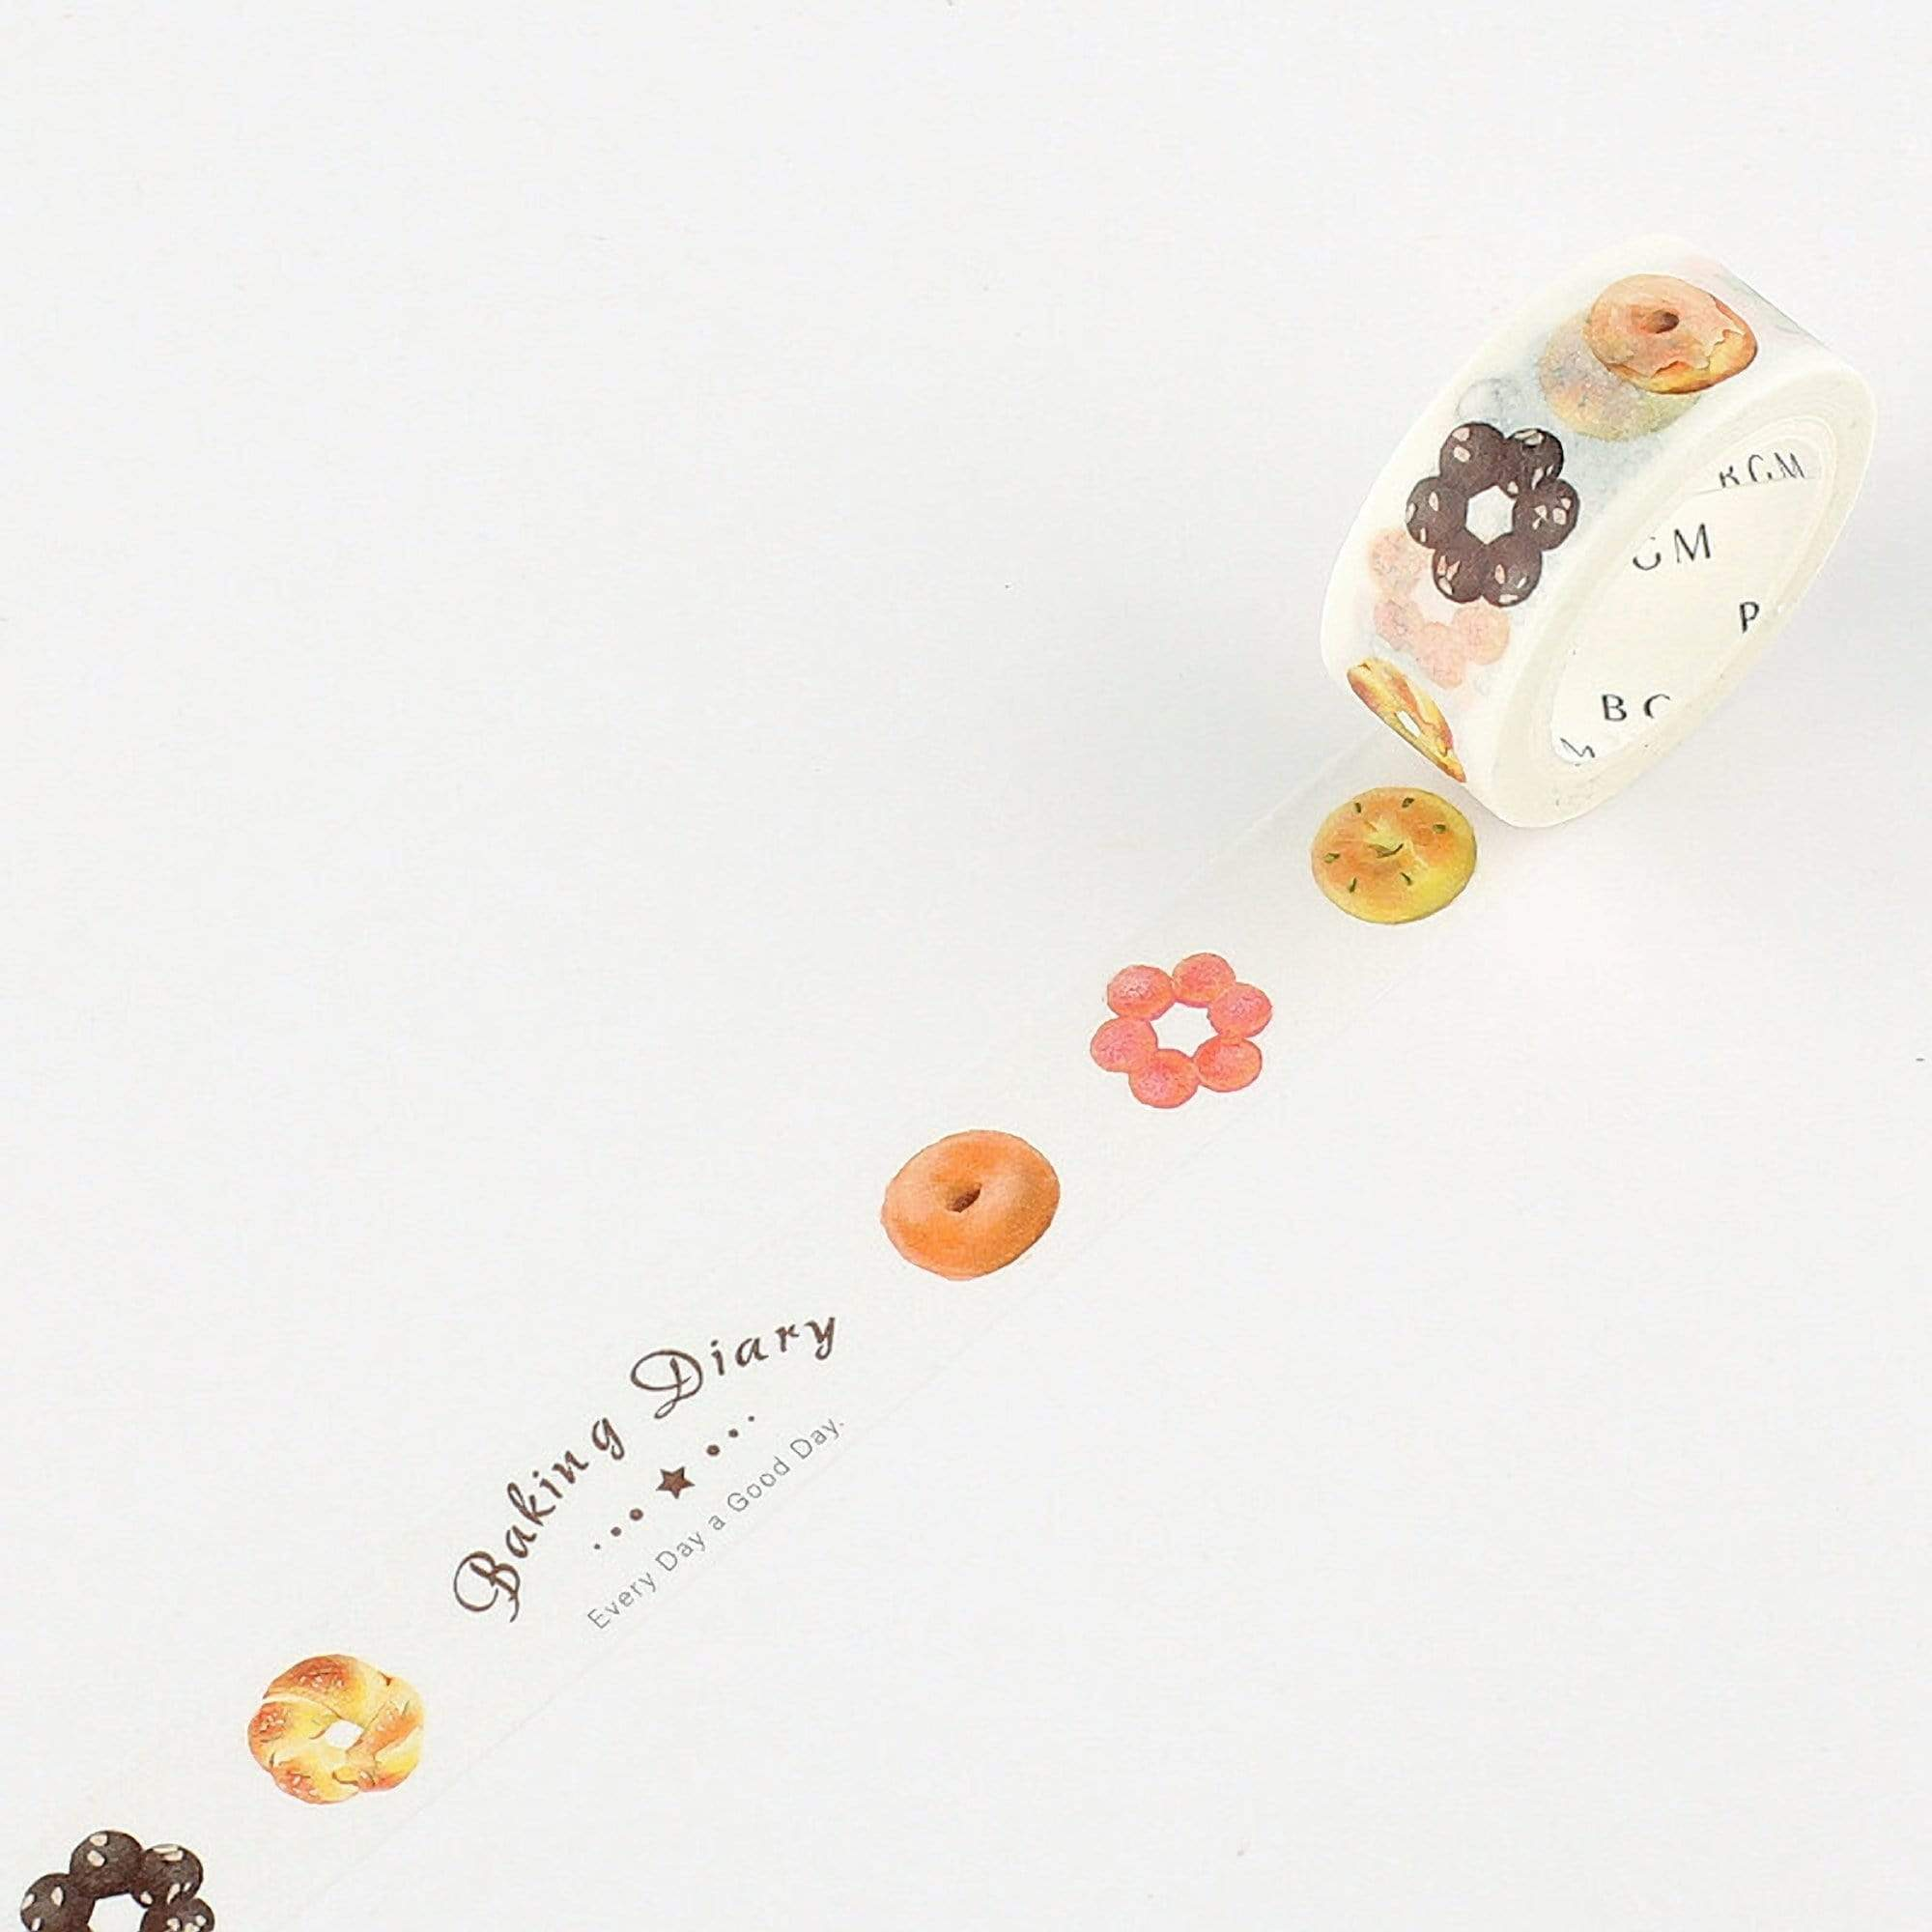 BGM Doughnut Donut Bakery Washi Tape - The Stationery Life!